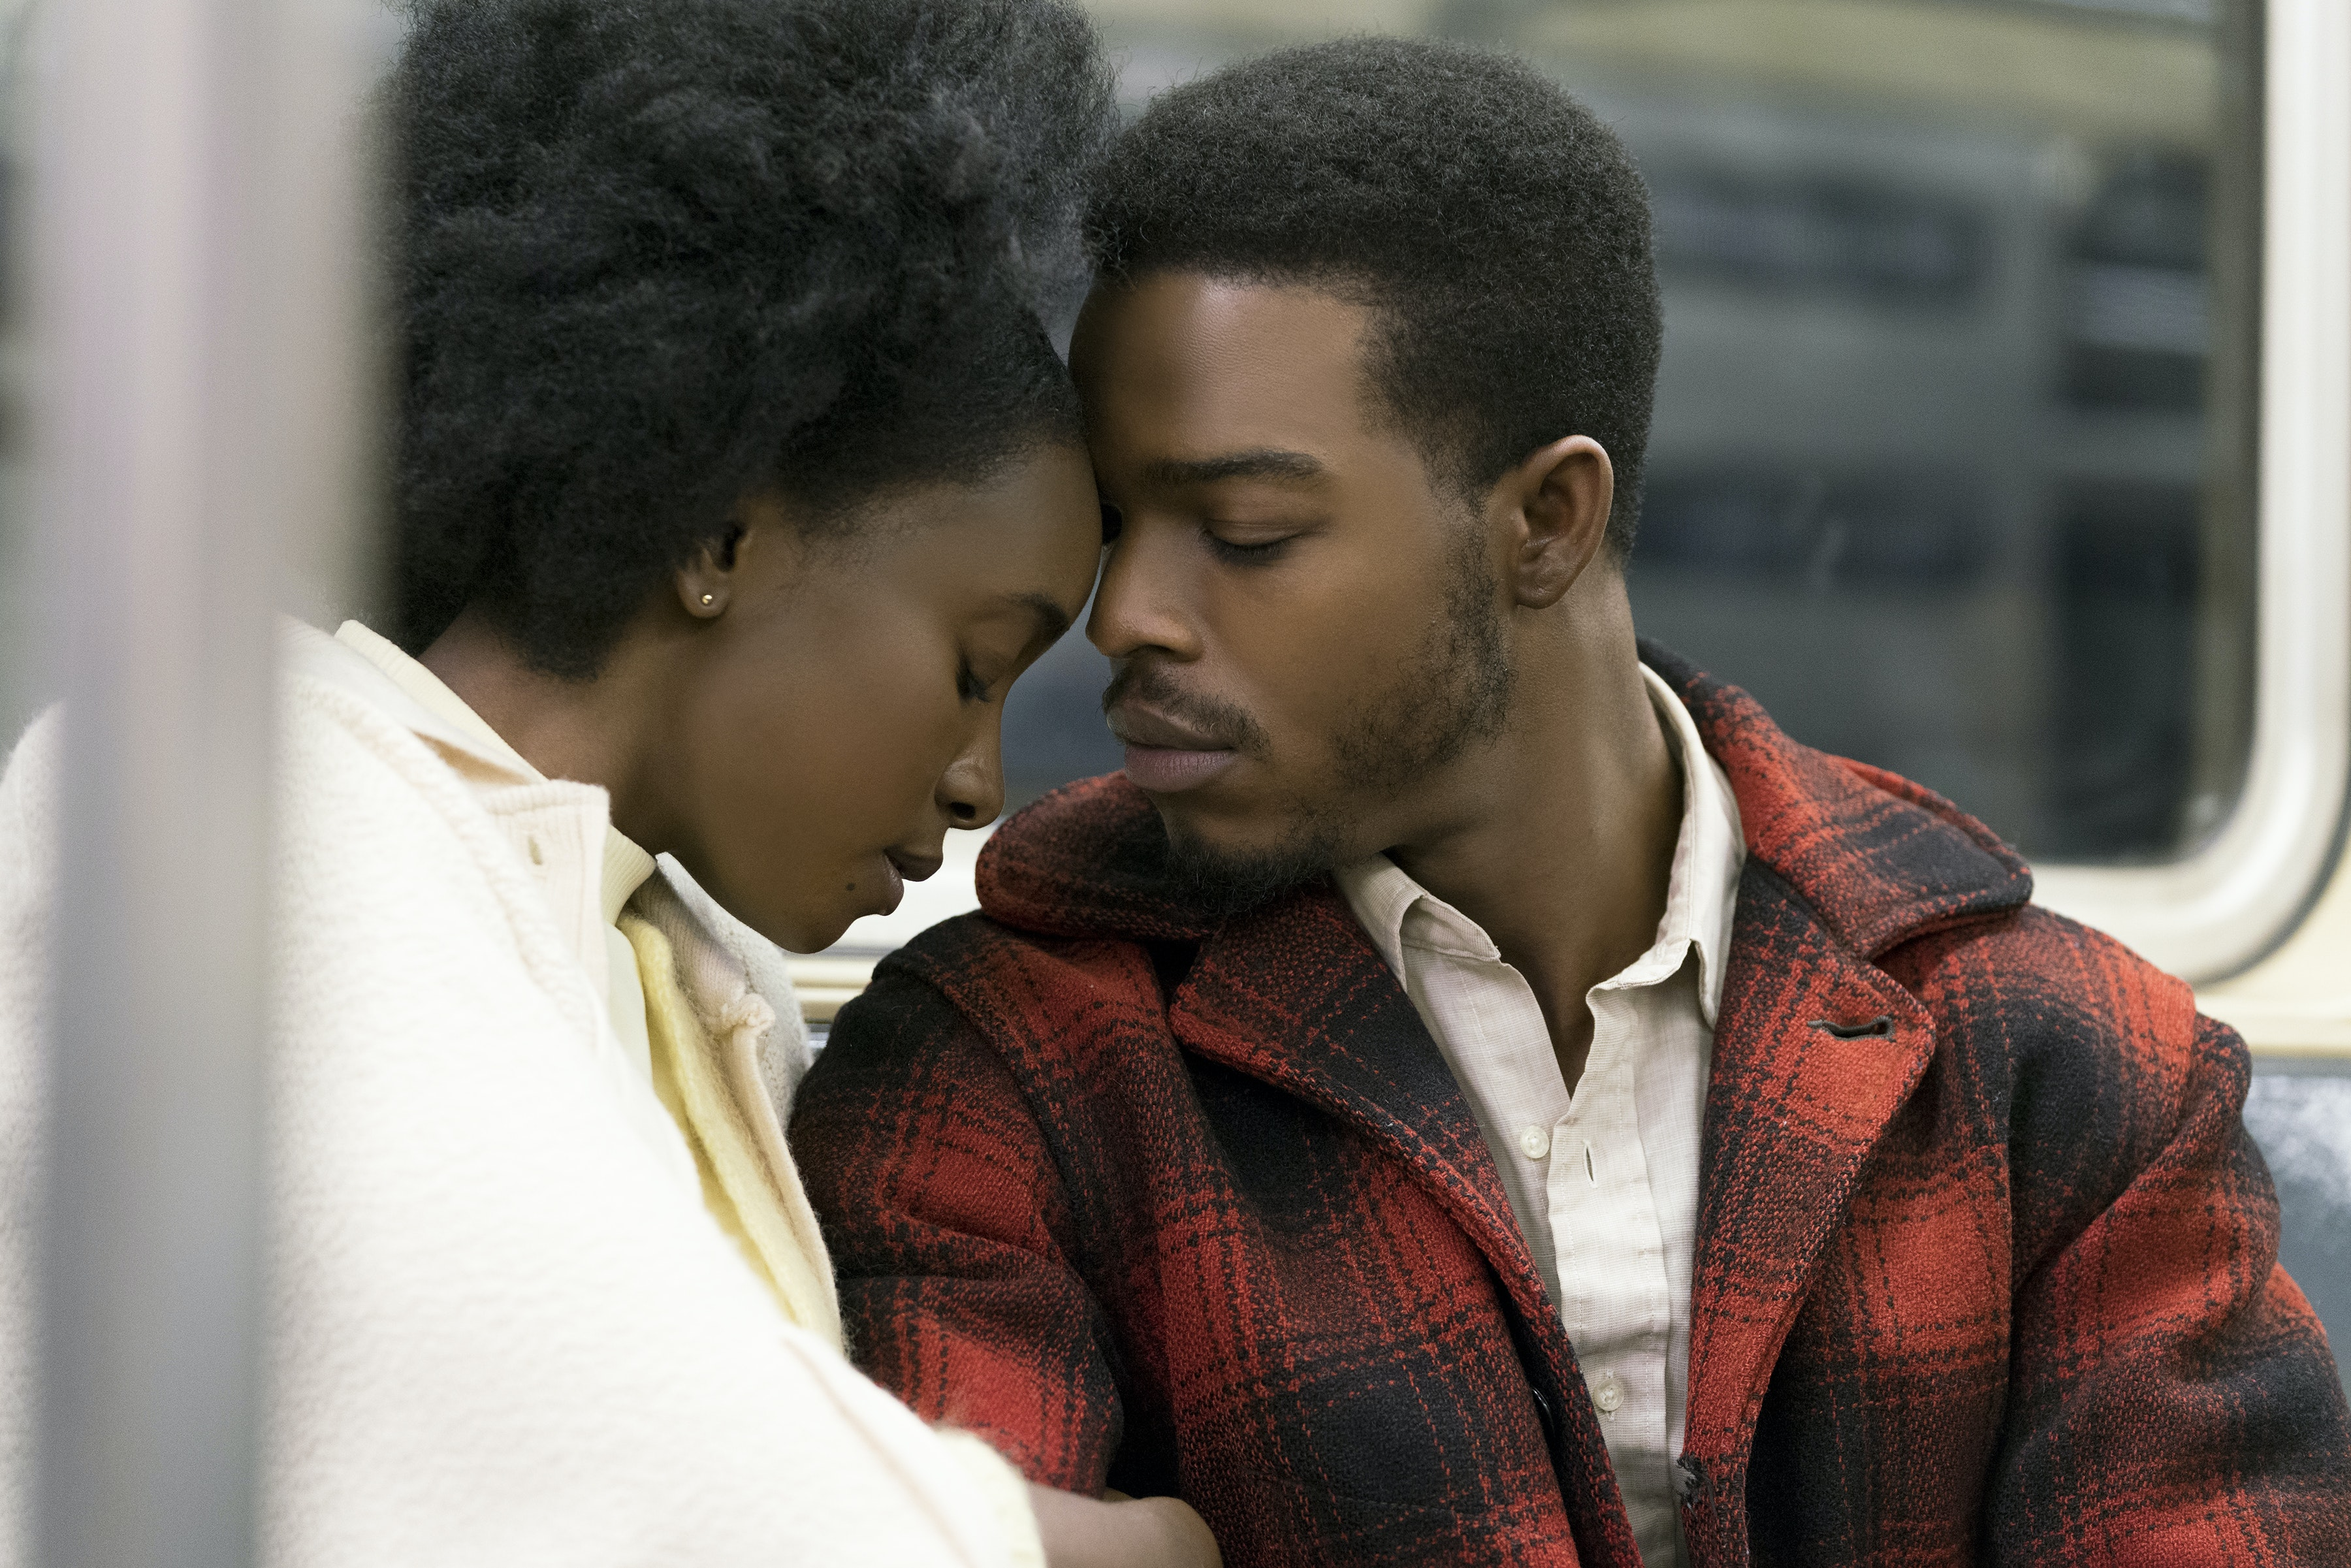 If Beale Street Could Talk is a sumptuous, emotional follow up to Moonlight